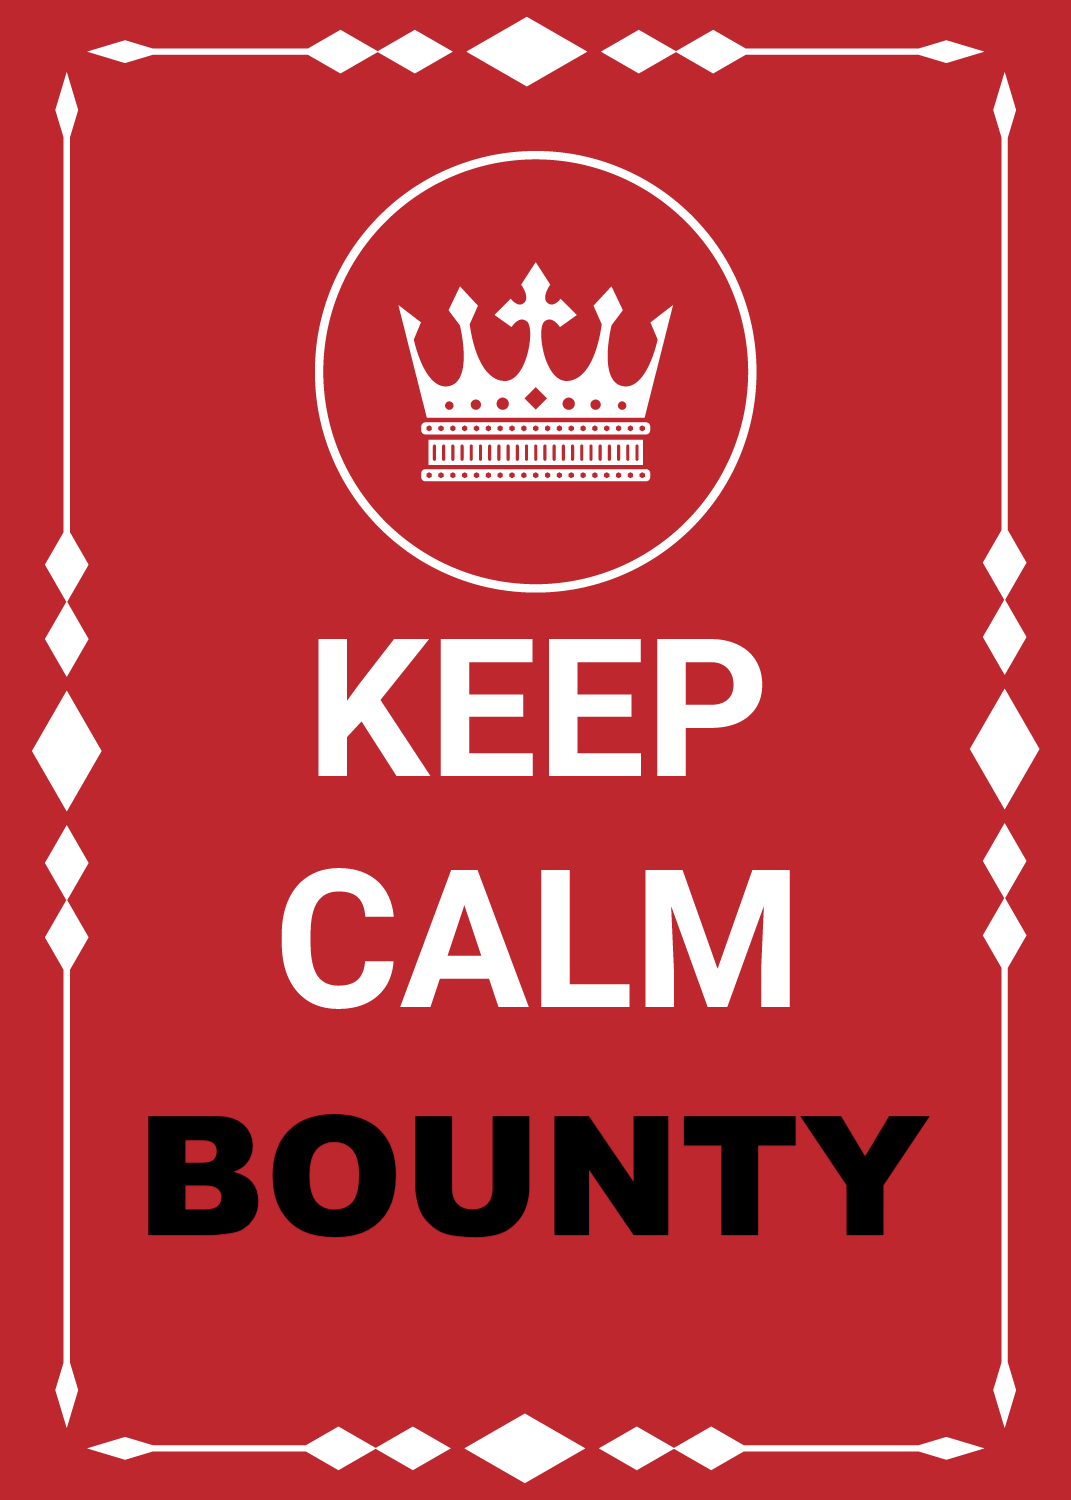 Keep Calm Bounty